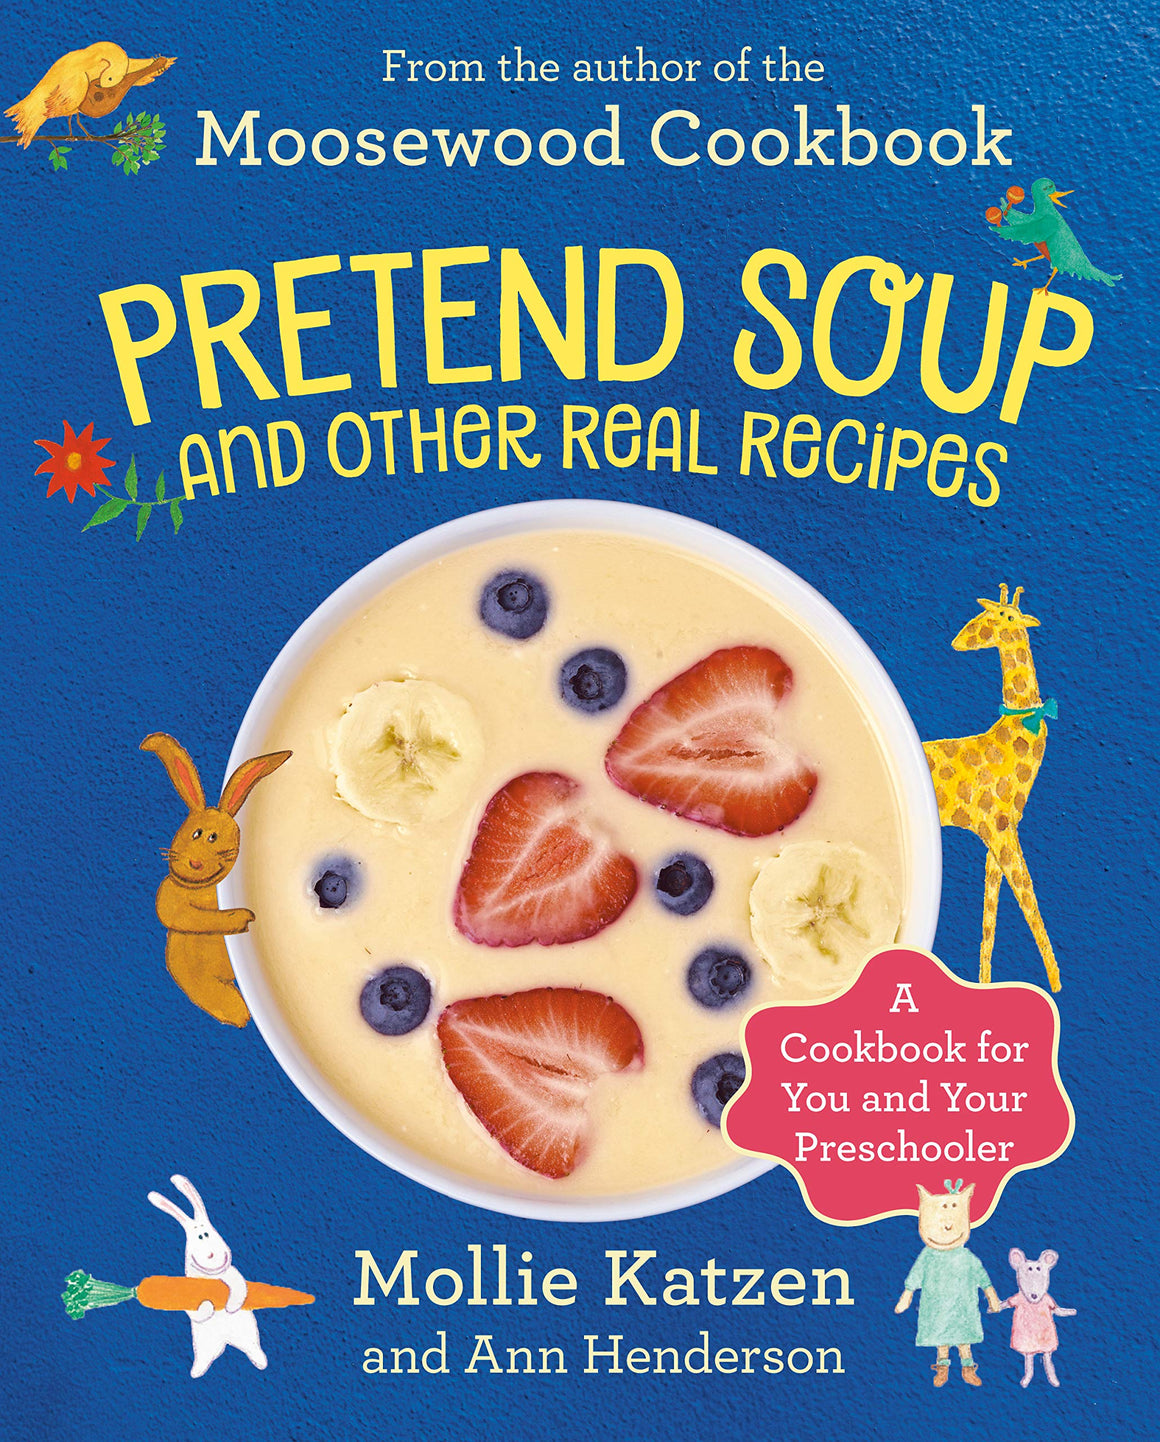 Mollie Katzen and Ann Henderson. Pretend Soup and Other Real Recipes: A Cookbook for Preschoolers and Up.